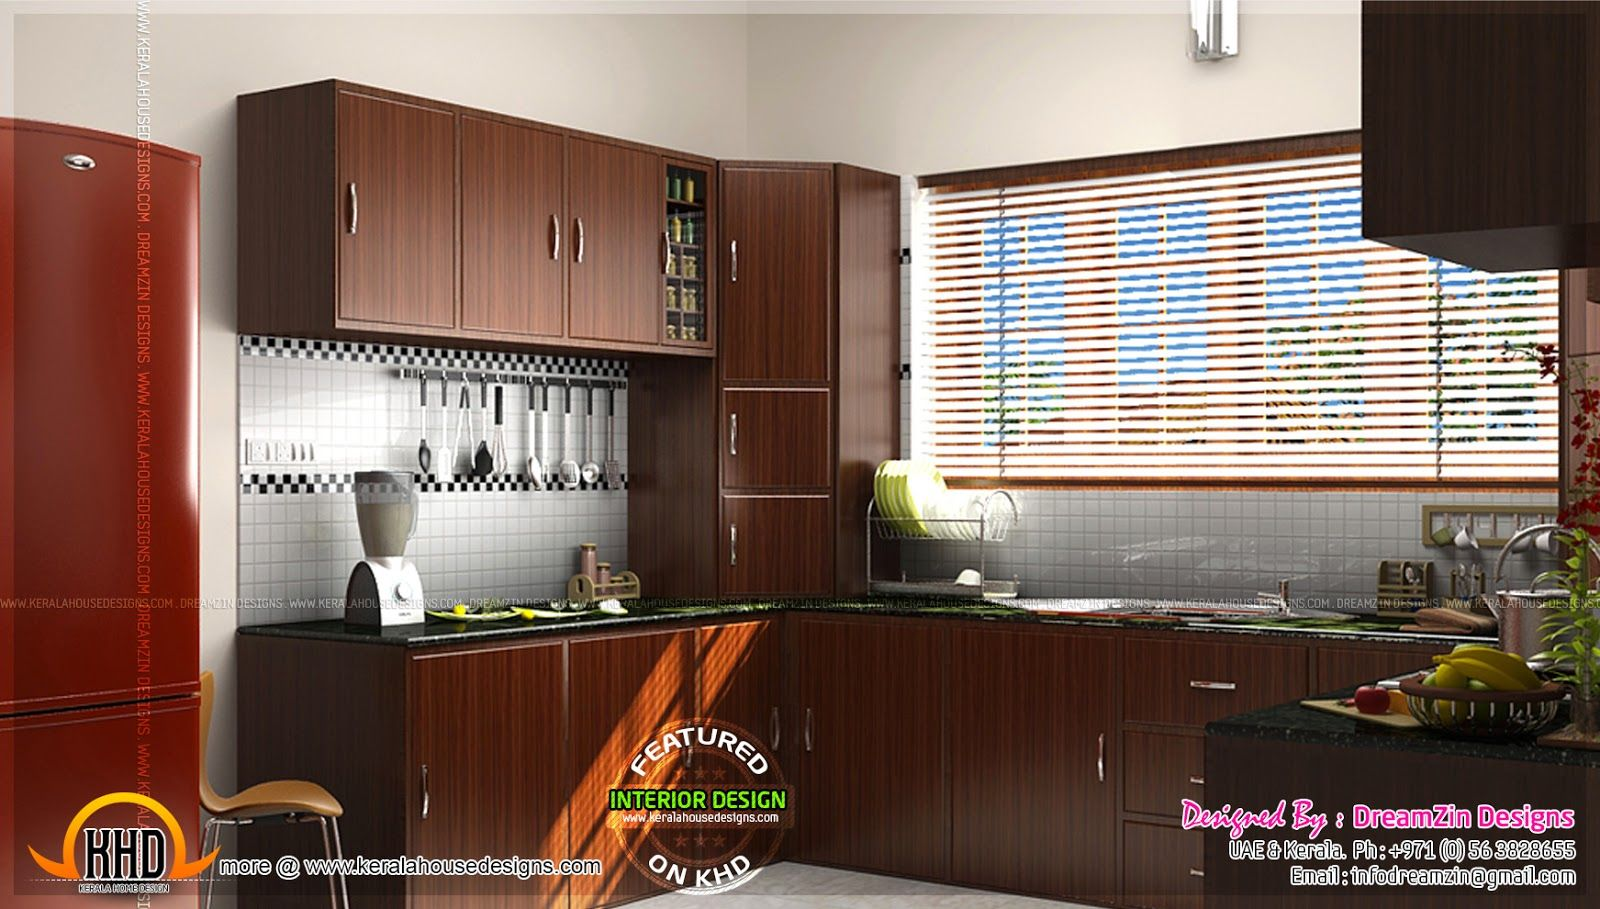 Superieur Kerala Kitchen Interior Design Modular Kitchen Kerala Kerala Kitchen  Kitchen Interior Designs Contact House Design